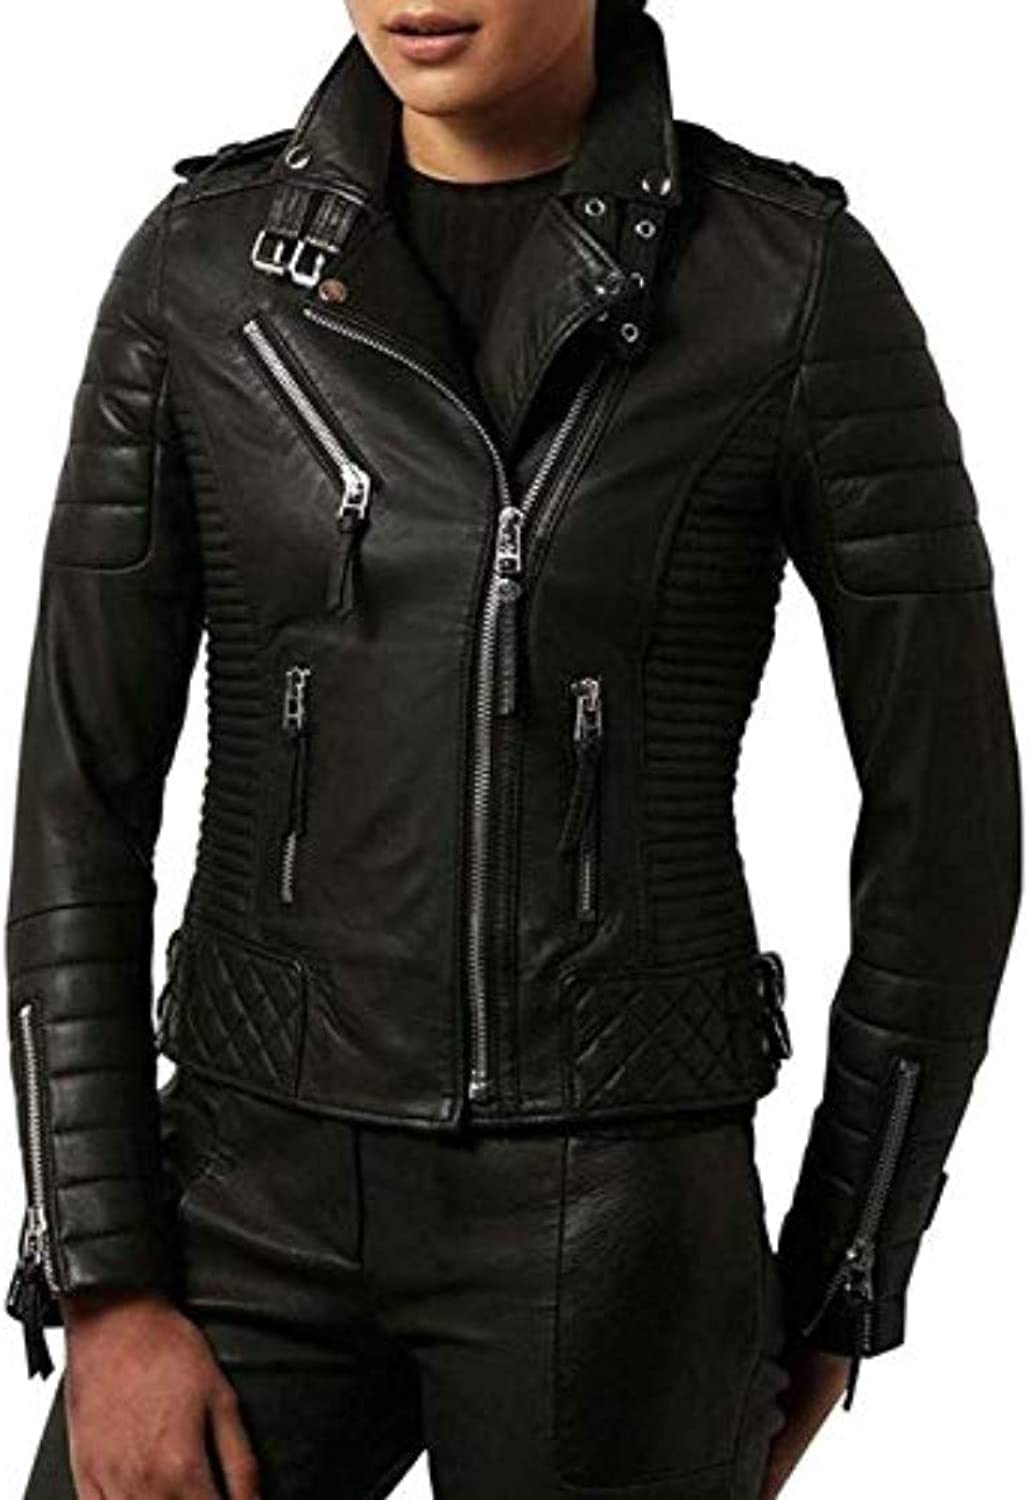 New Fashion Style Women's Leather Jackets Black A1_